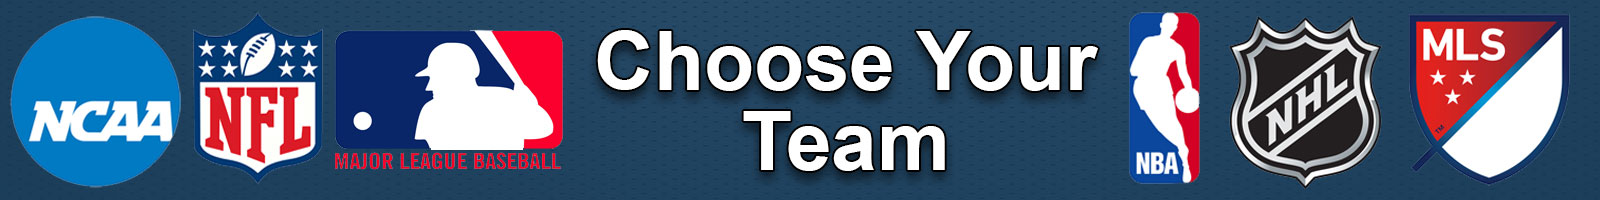 Select Favorite Team In All Leagues